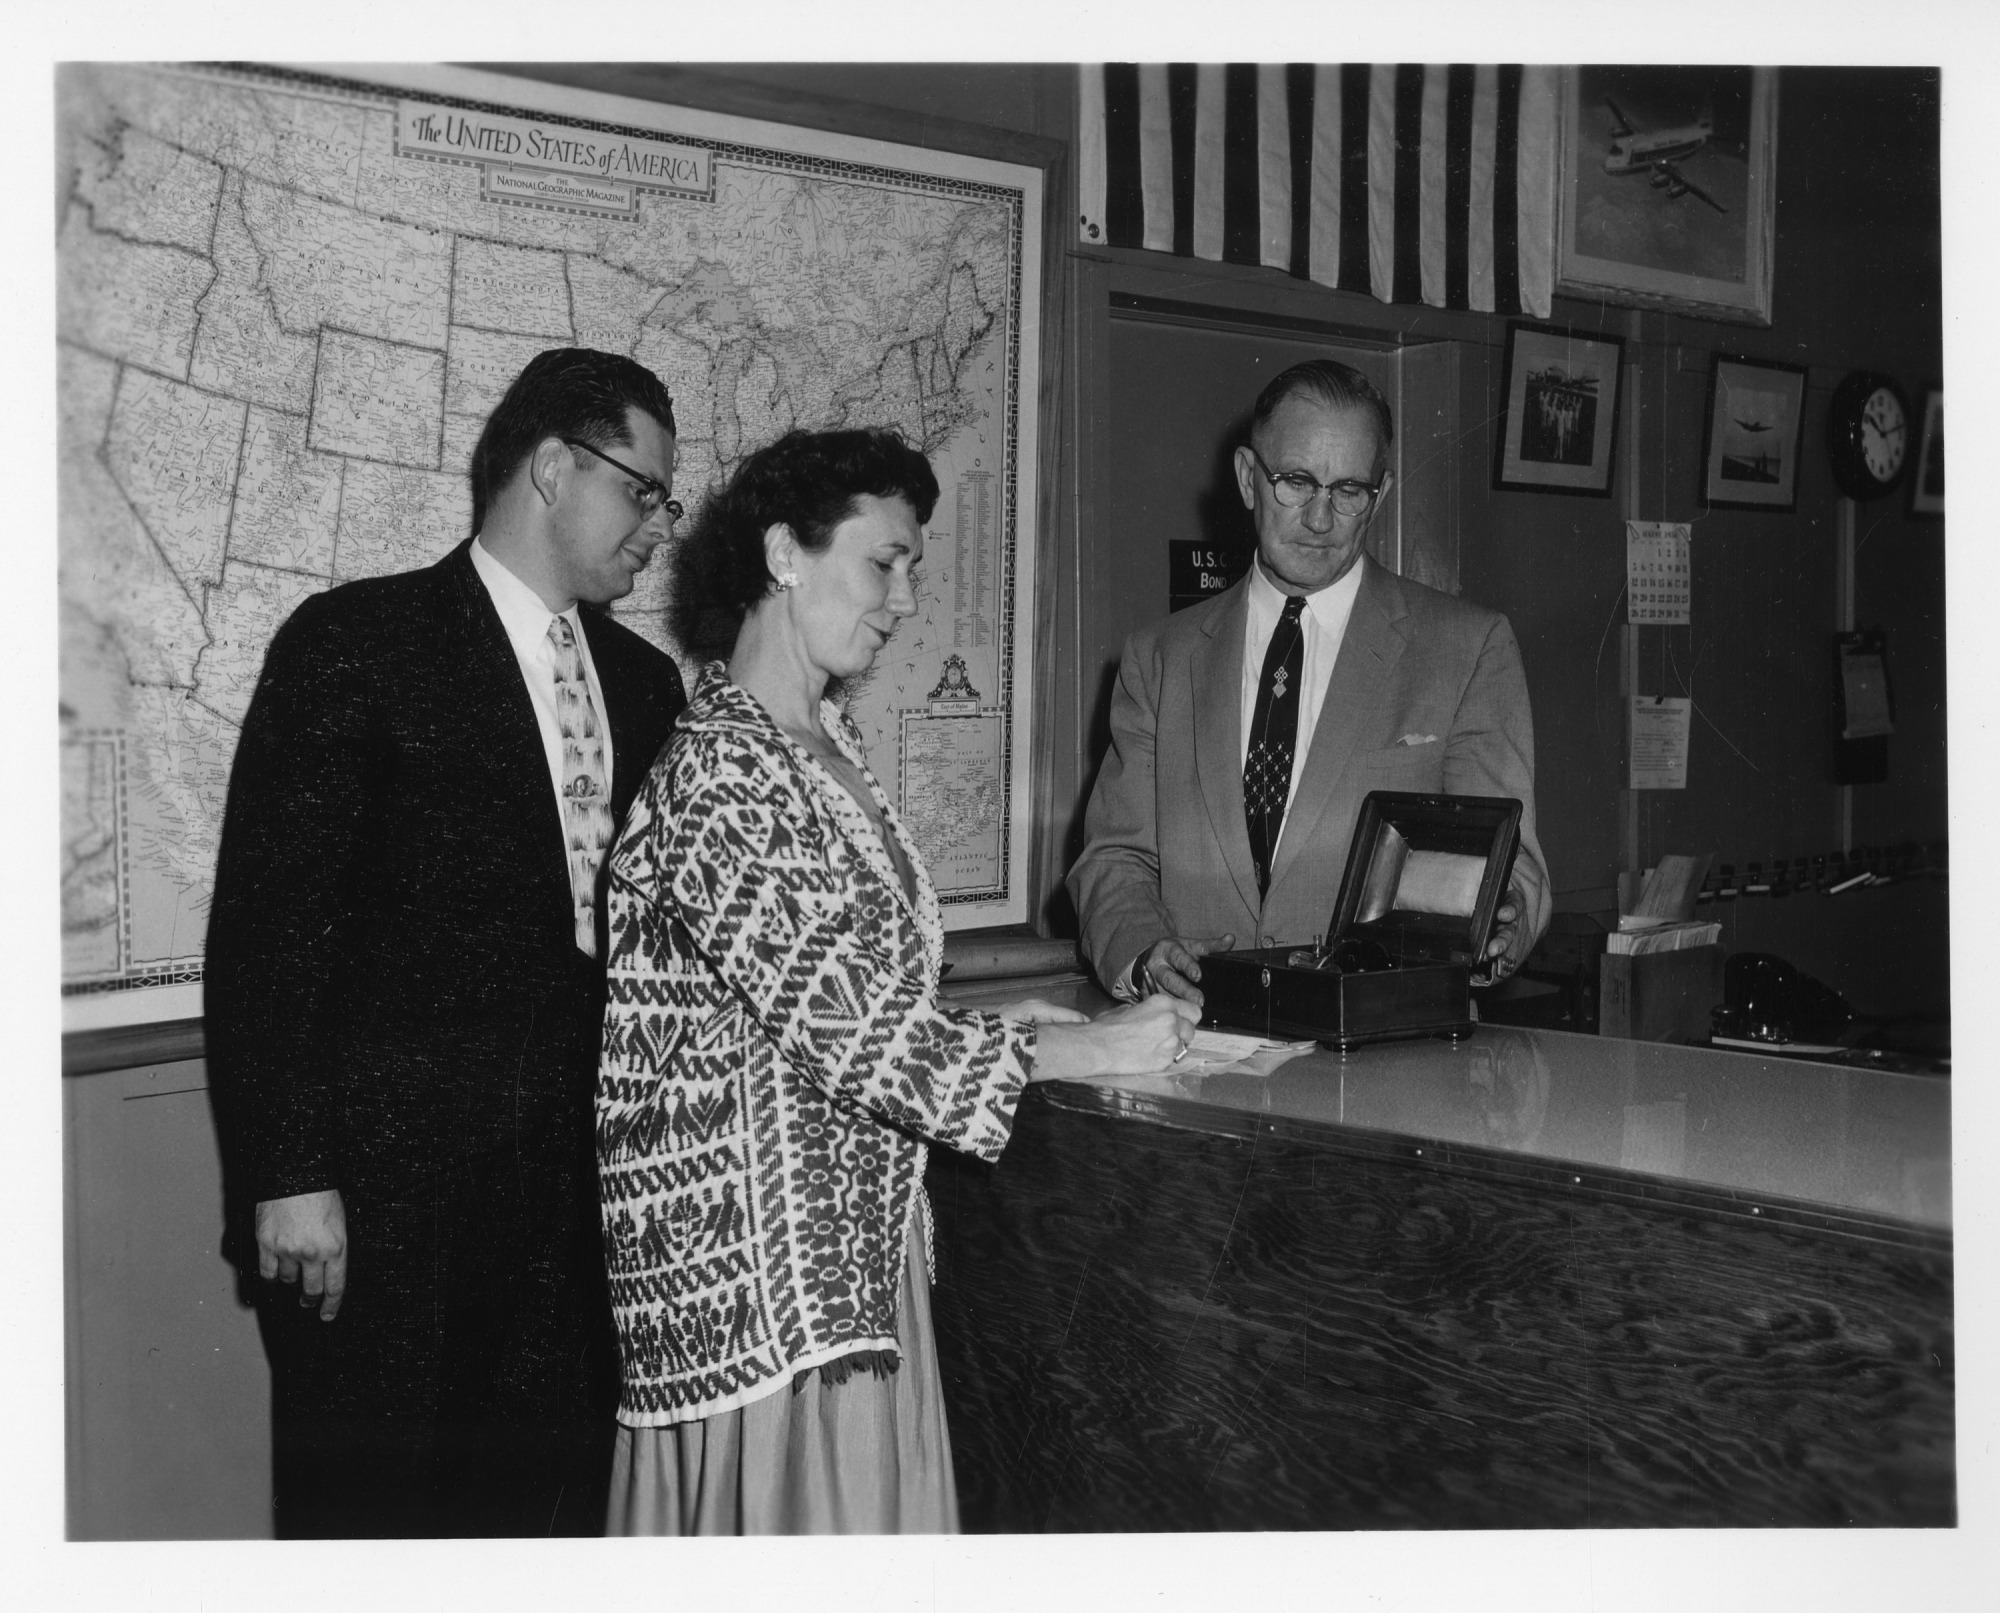 Helena Weiss, George B. Griffenhagen and Bane, by Unknown, August 24, 1956, Smithsonian Archives - History Div, SIA2009-4253.